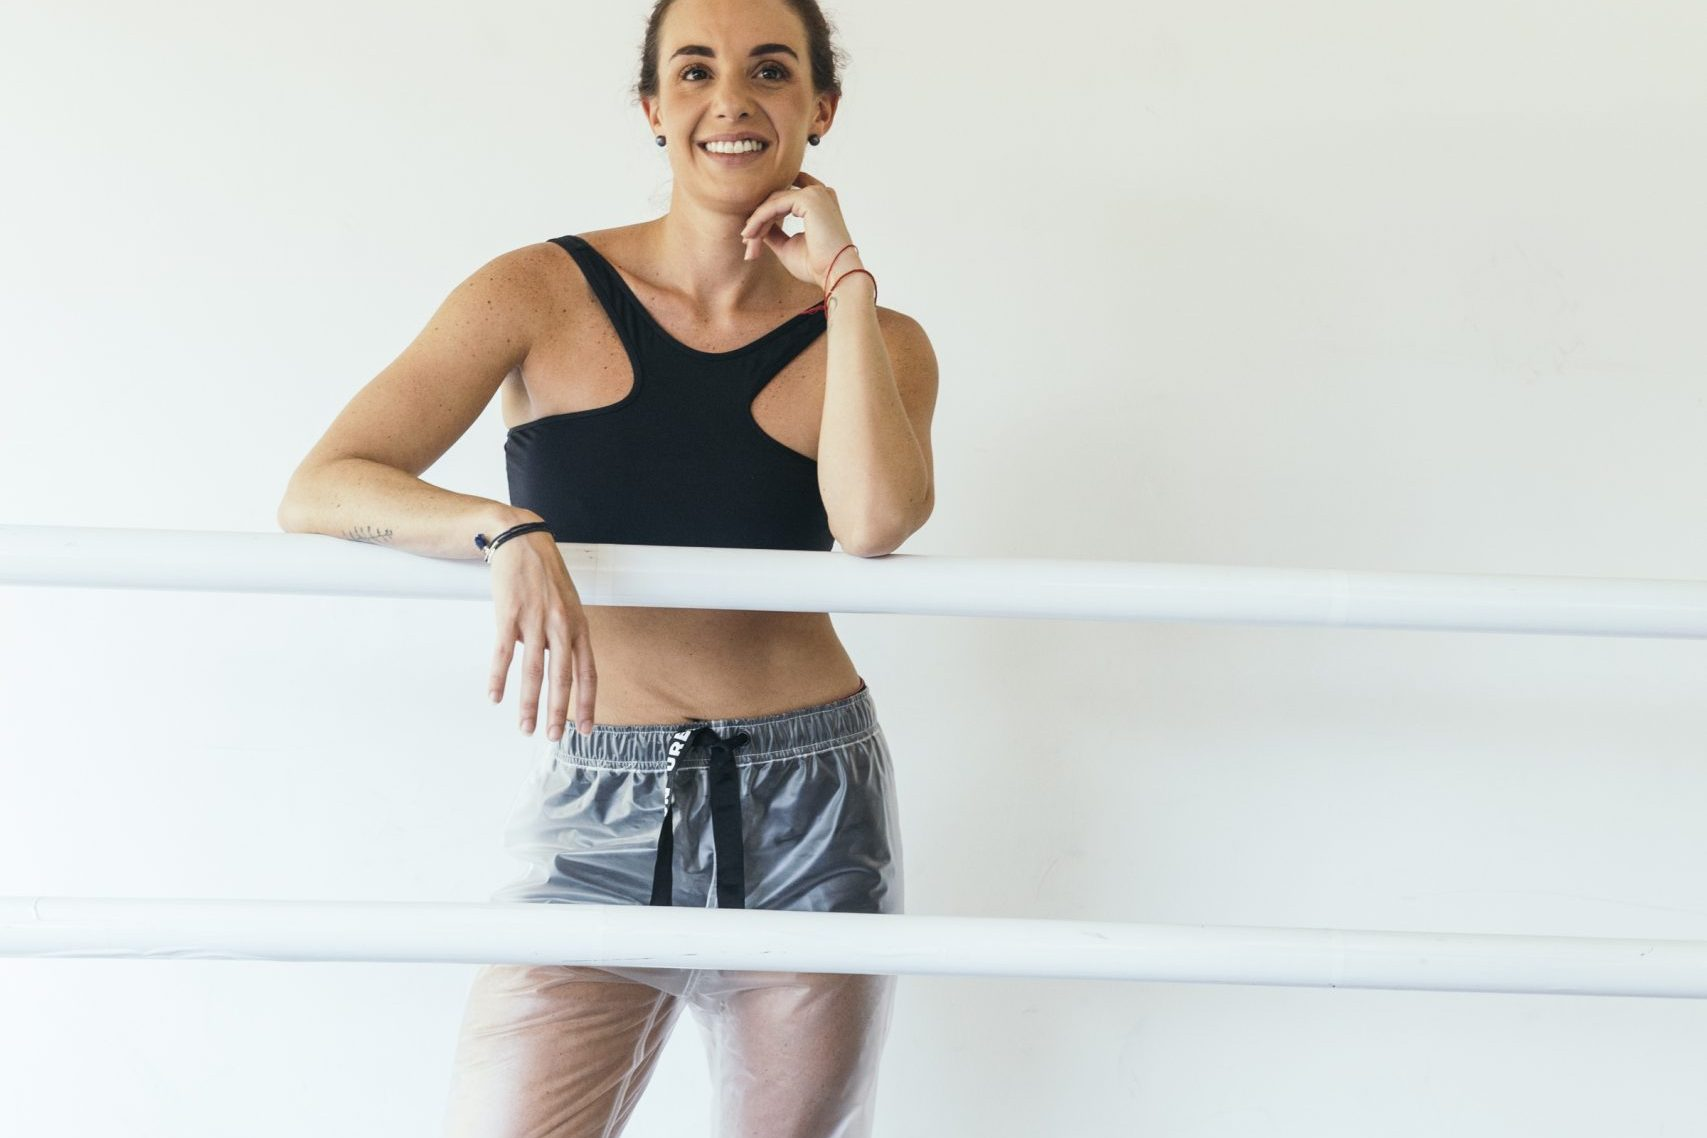 16 MINUTES WITH US - INNER THIGHS